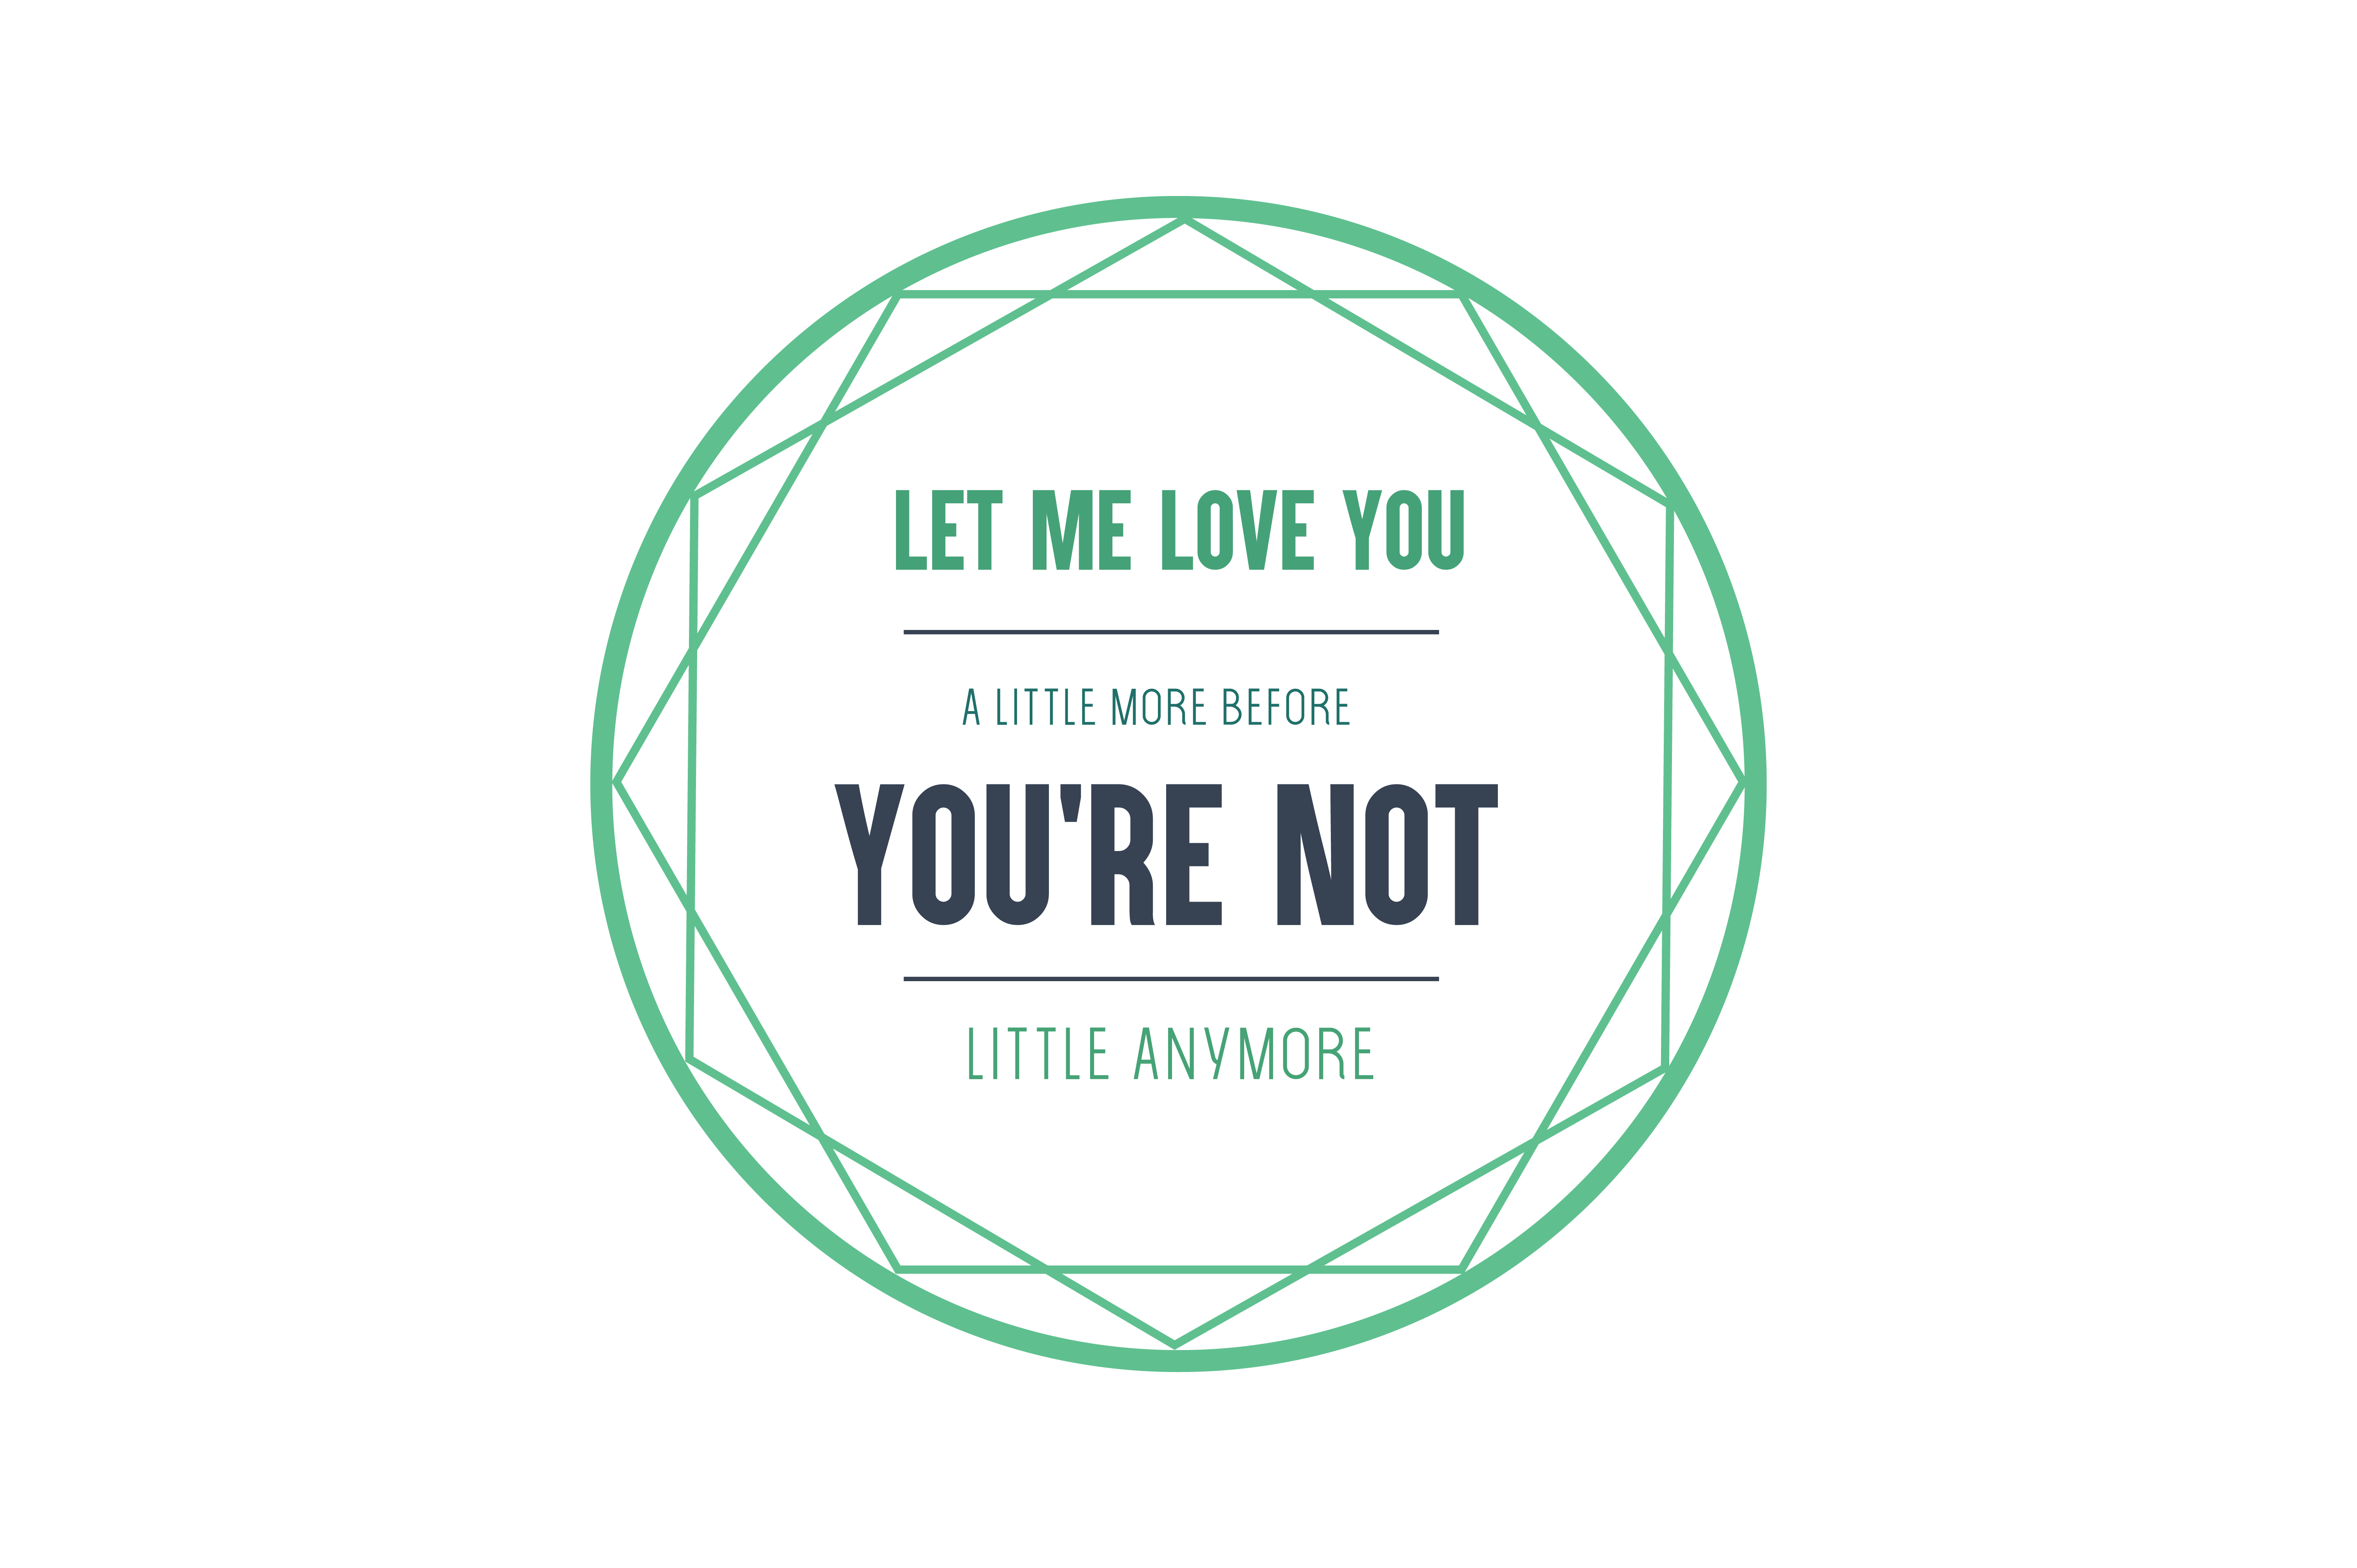 Download Free Let Me Love You A Little More Before You Re Notlittle Anymore for Cricut Explore, Silhouette and other cutting machines.